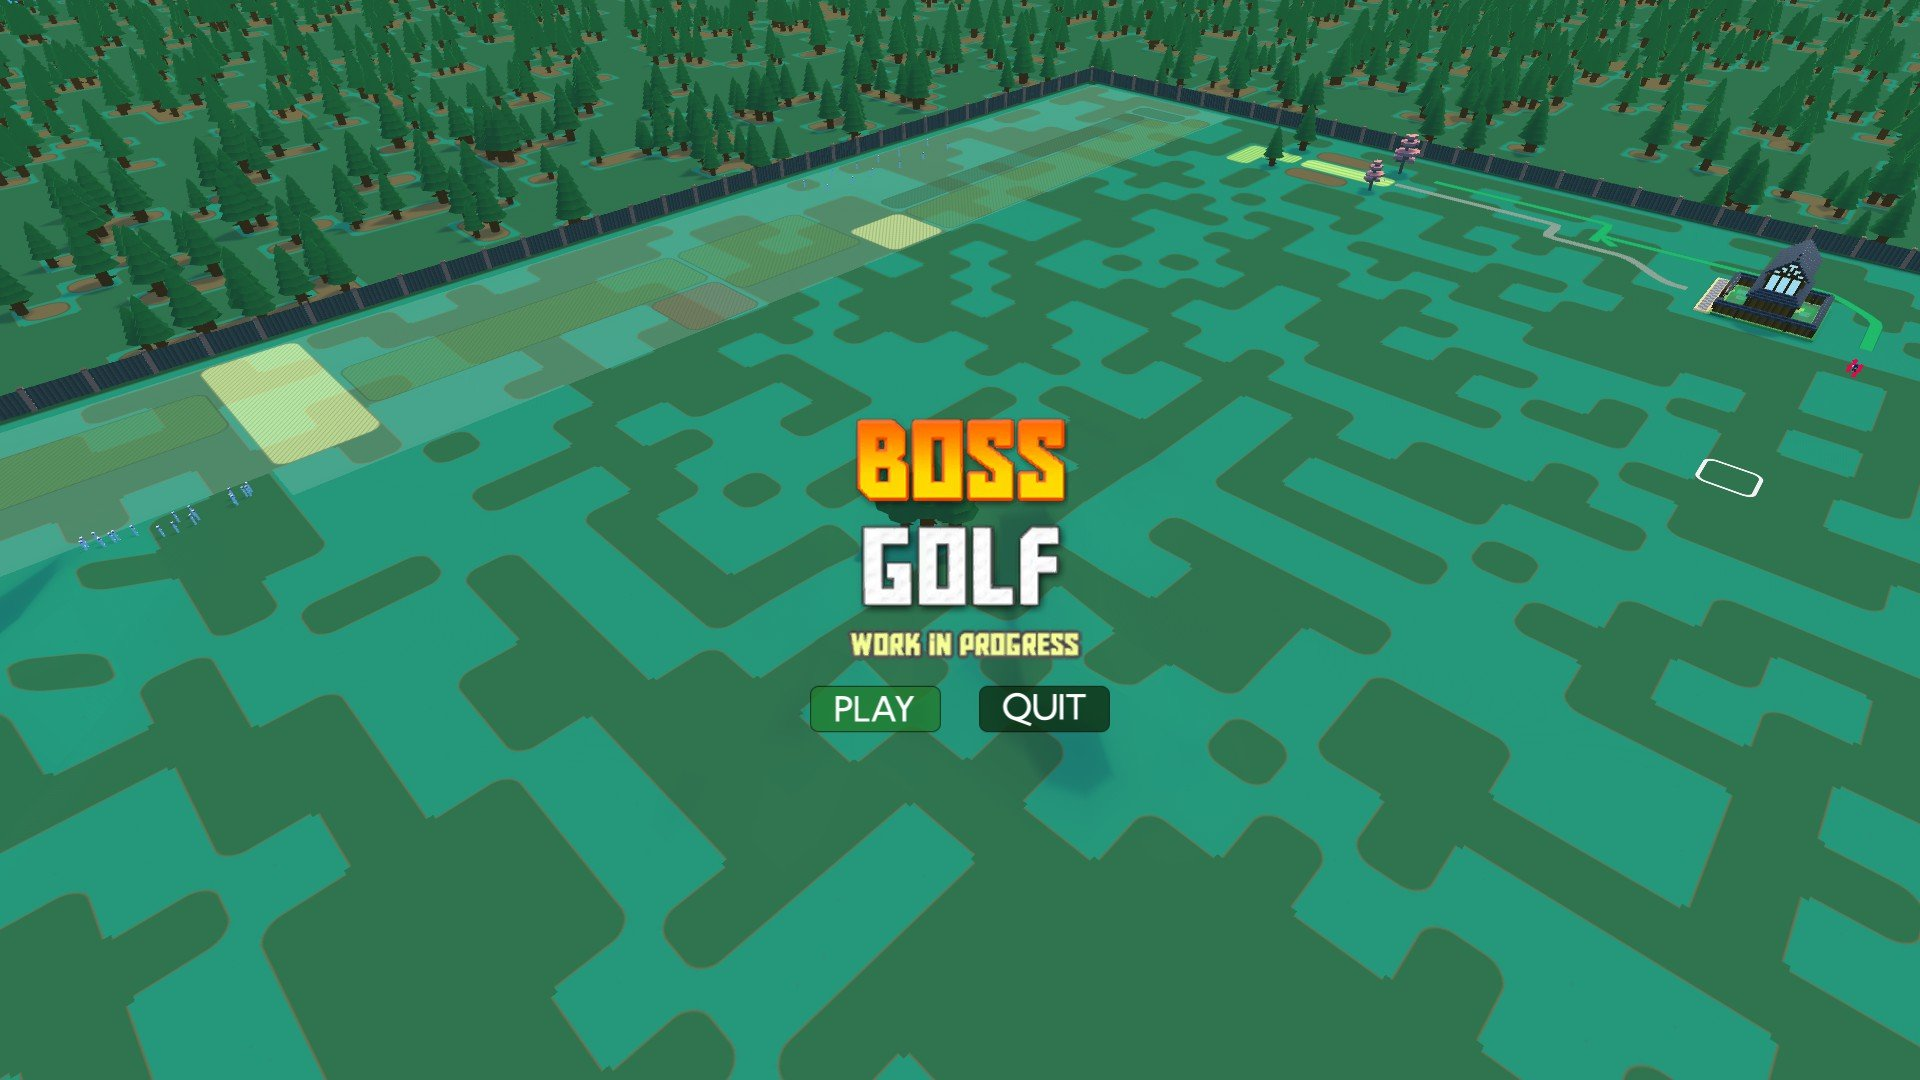 Boss Golf has all the charm of the '90s 'Tycoon' games